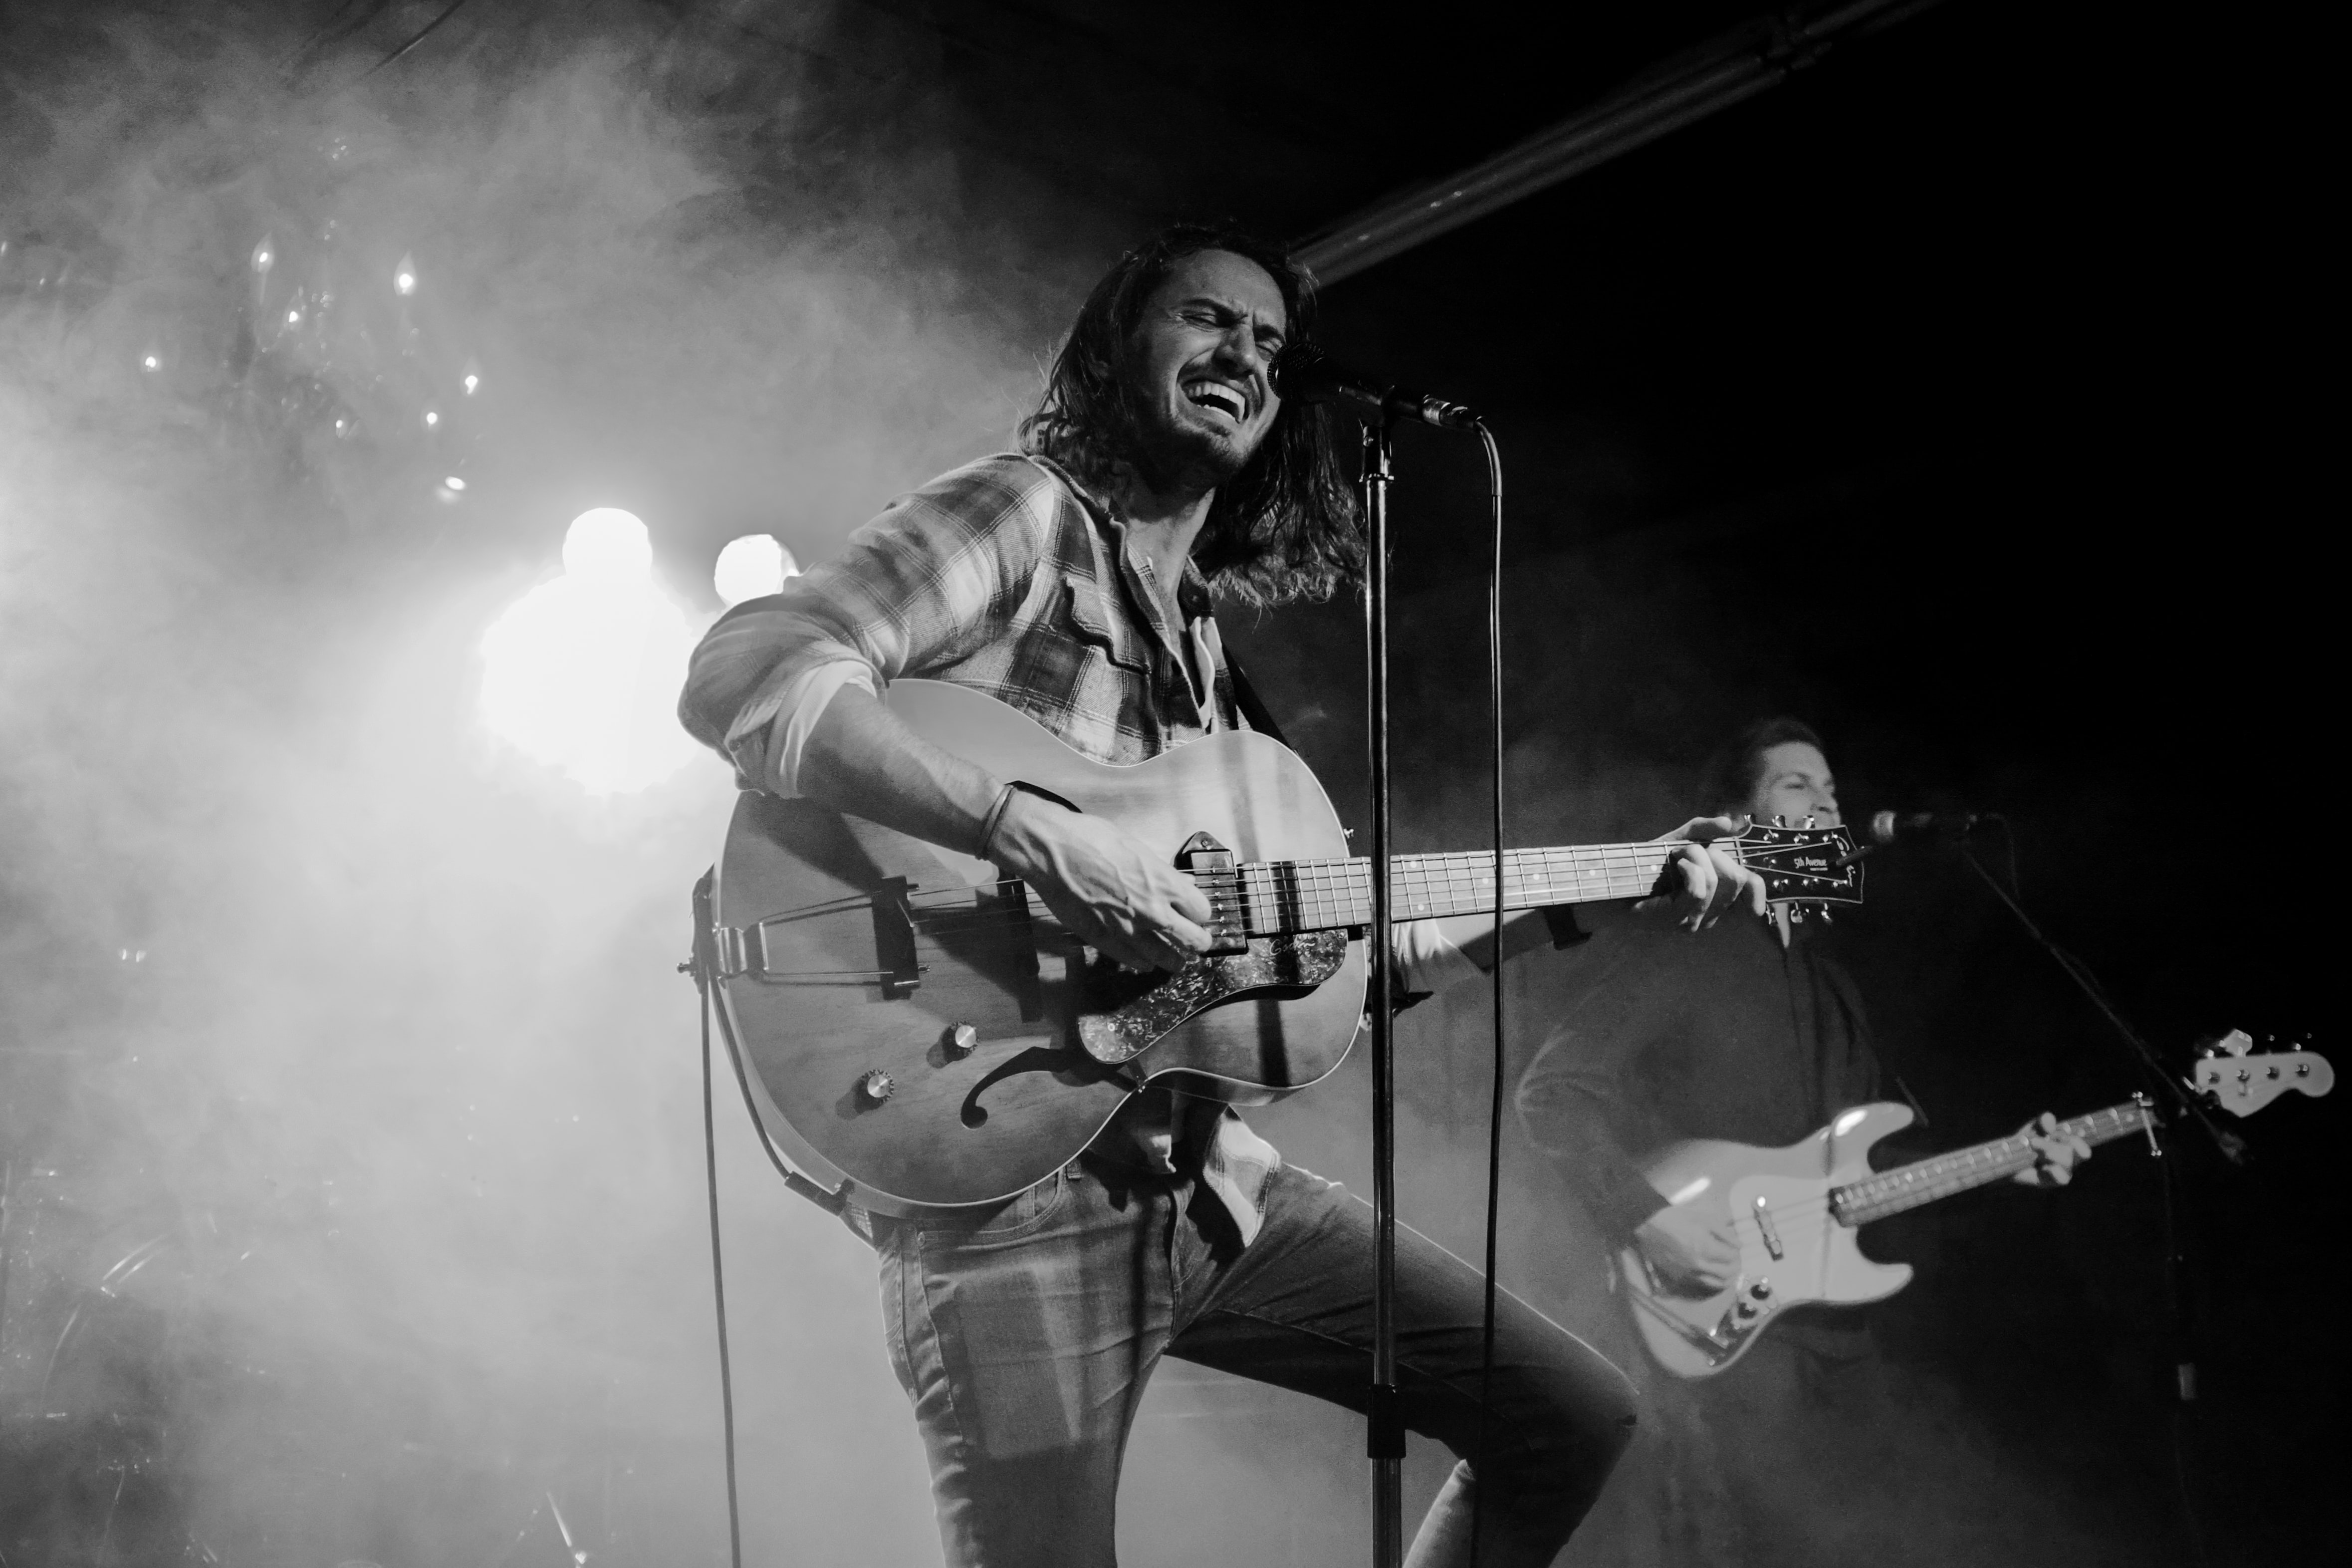 grayscale photography of man about to sing while playing guitar